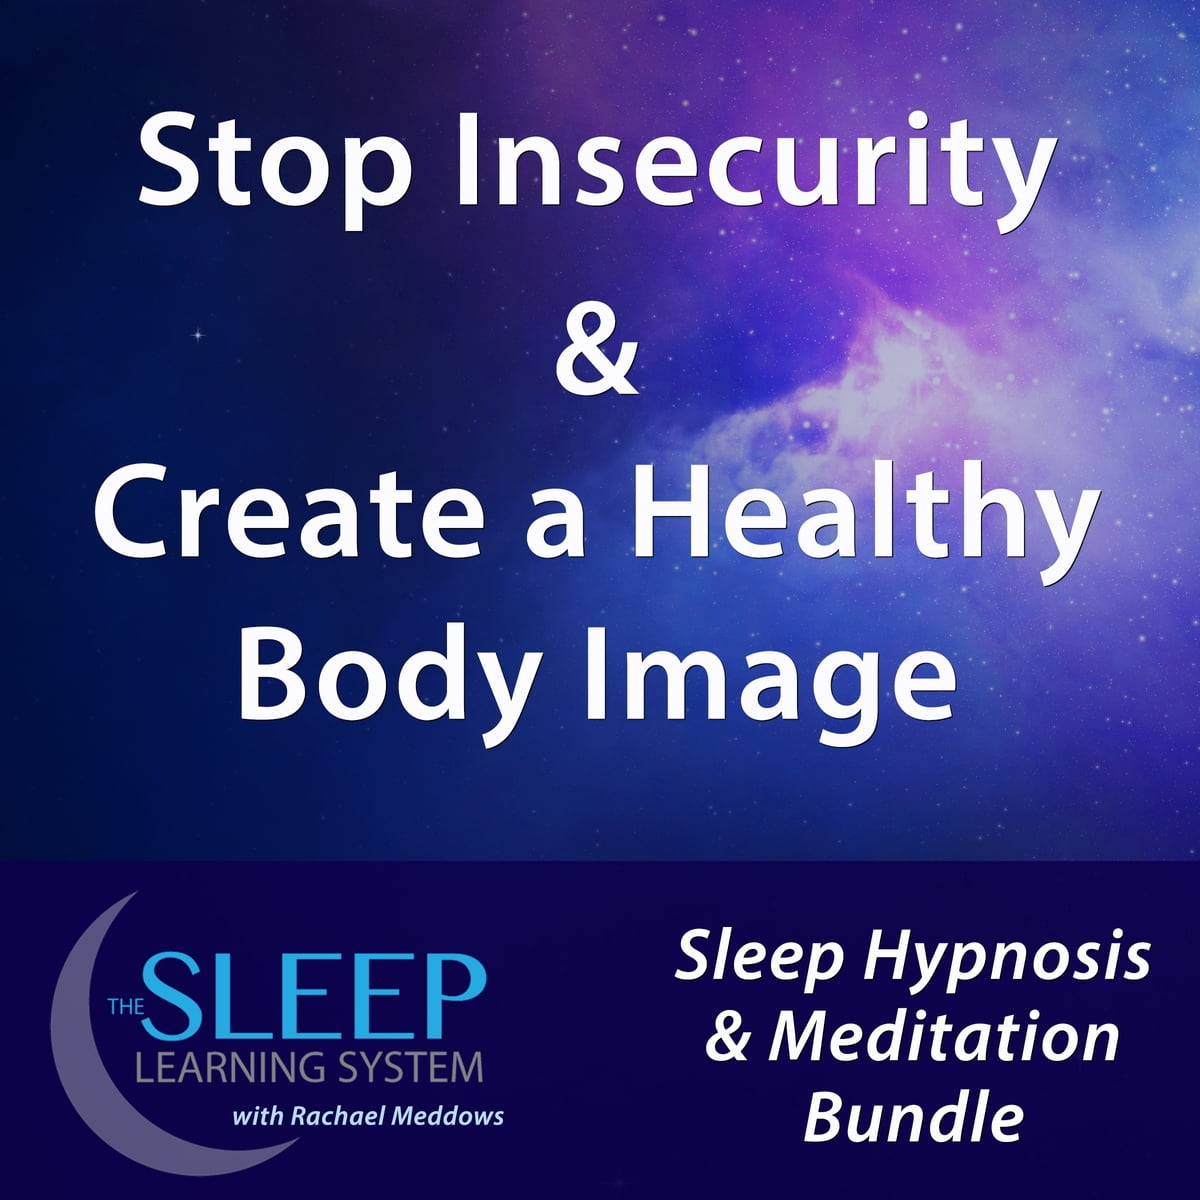 Stop Insecurity & Create a Healthy Body Image - Sleep Learning System  Bundle with Rachael Meddows (Sleep Hypnosis & Meditation) audiobook by Joel